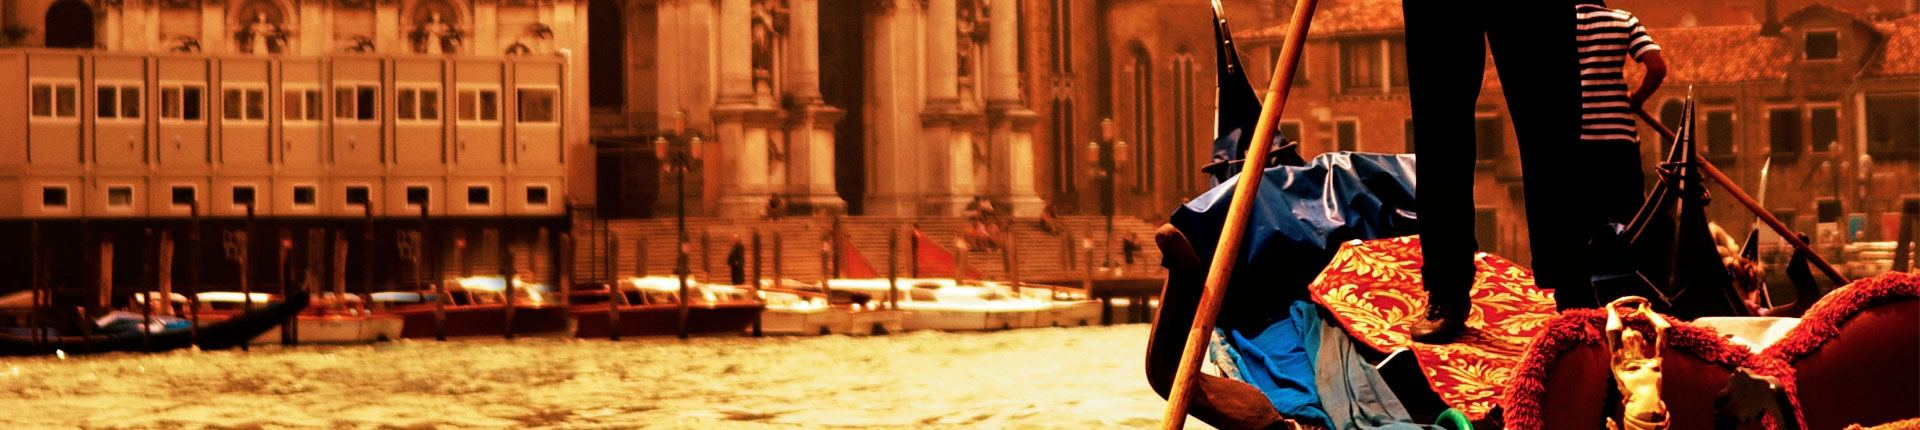 Appartements Venise Header Image